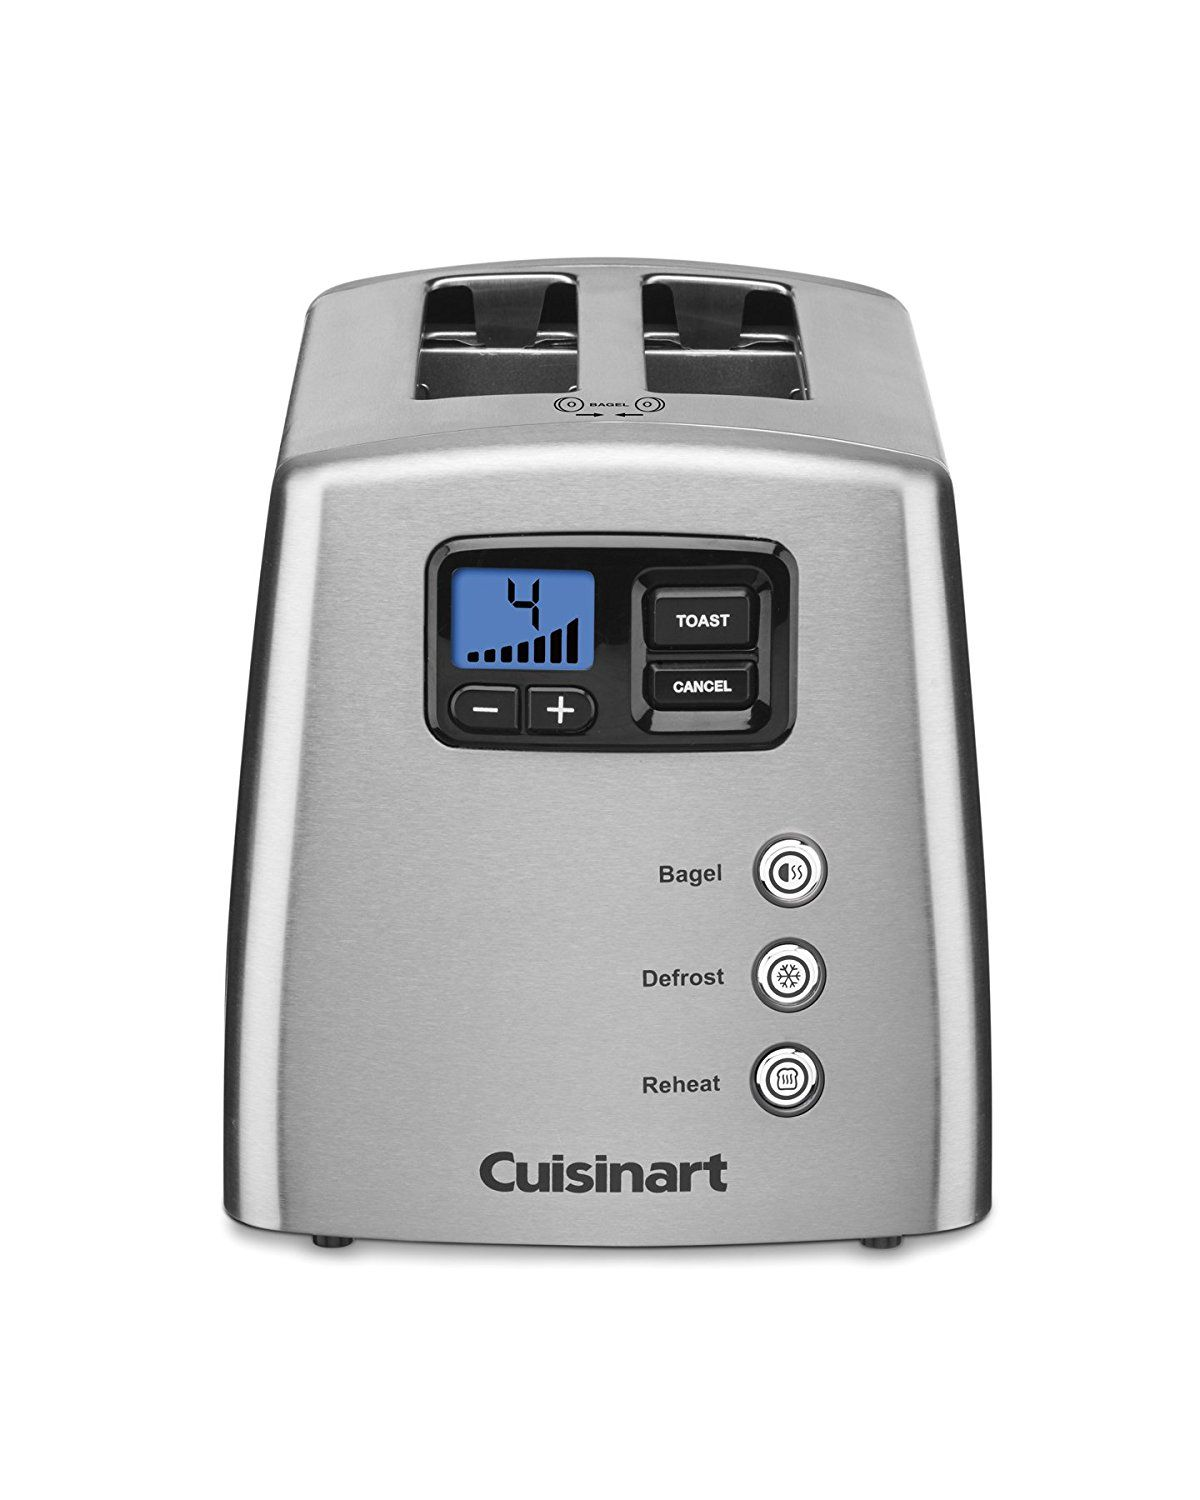 Cuisinart Cpt 420 Touch To Toast Leverless 2 Slice Toaster Click Image To Review More Details Cuisinart Toaster Best 2 Slice Toaster